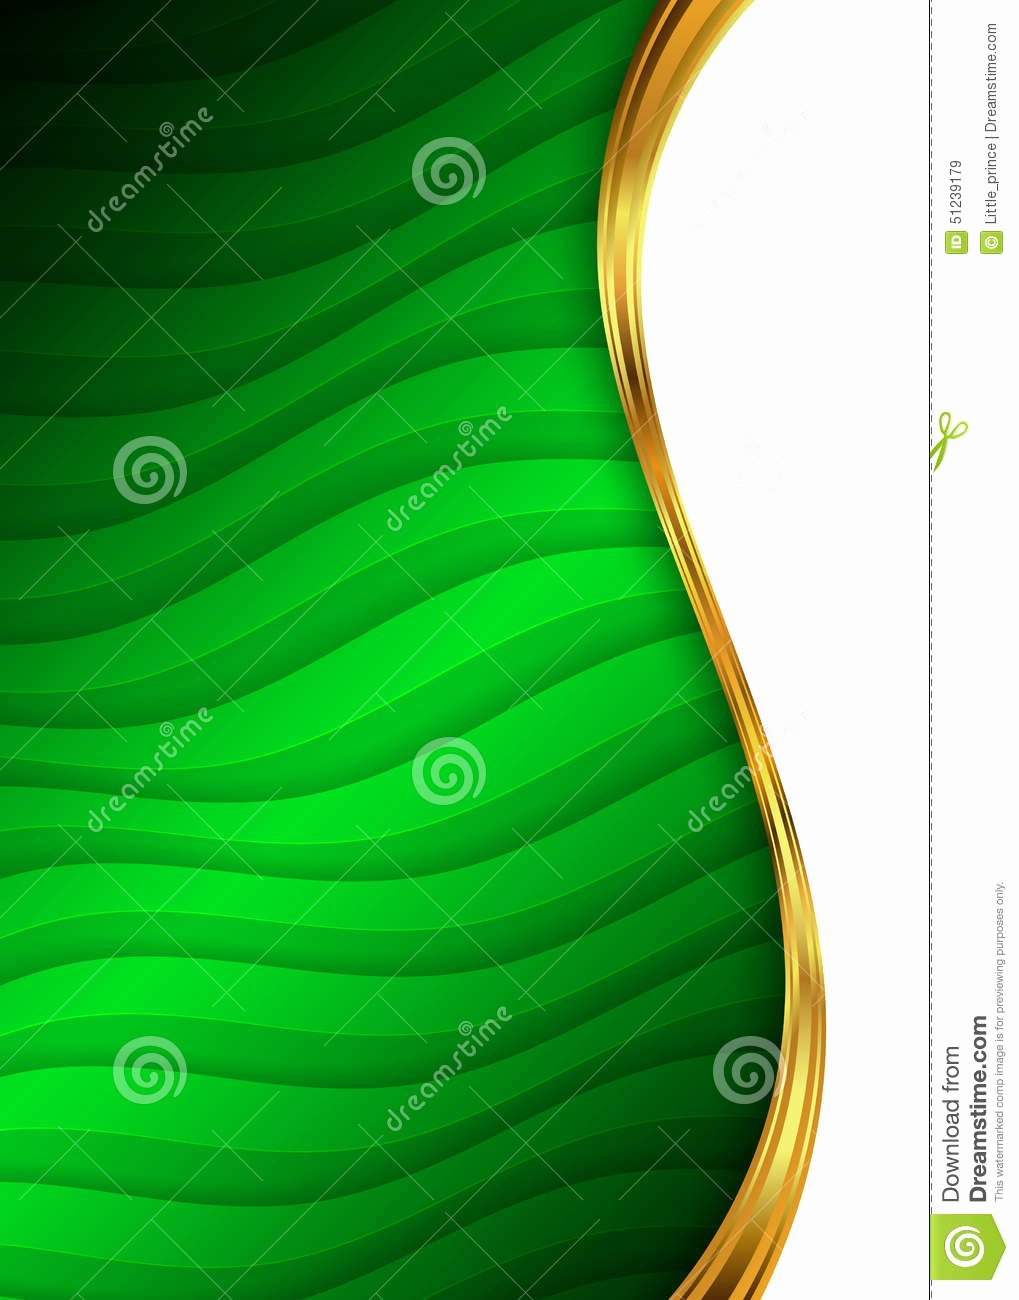 Video Background Website Template Fresh Green and Gold Abstract Background Template for Website